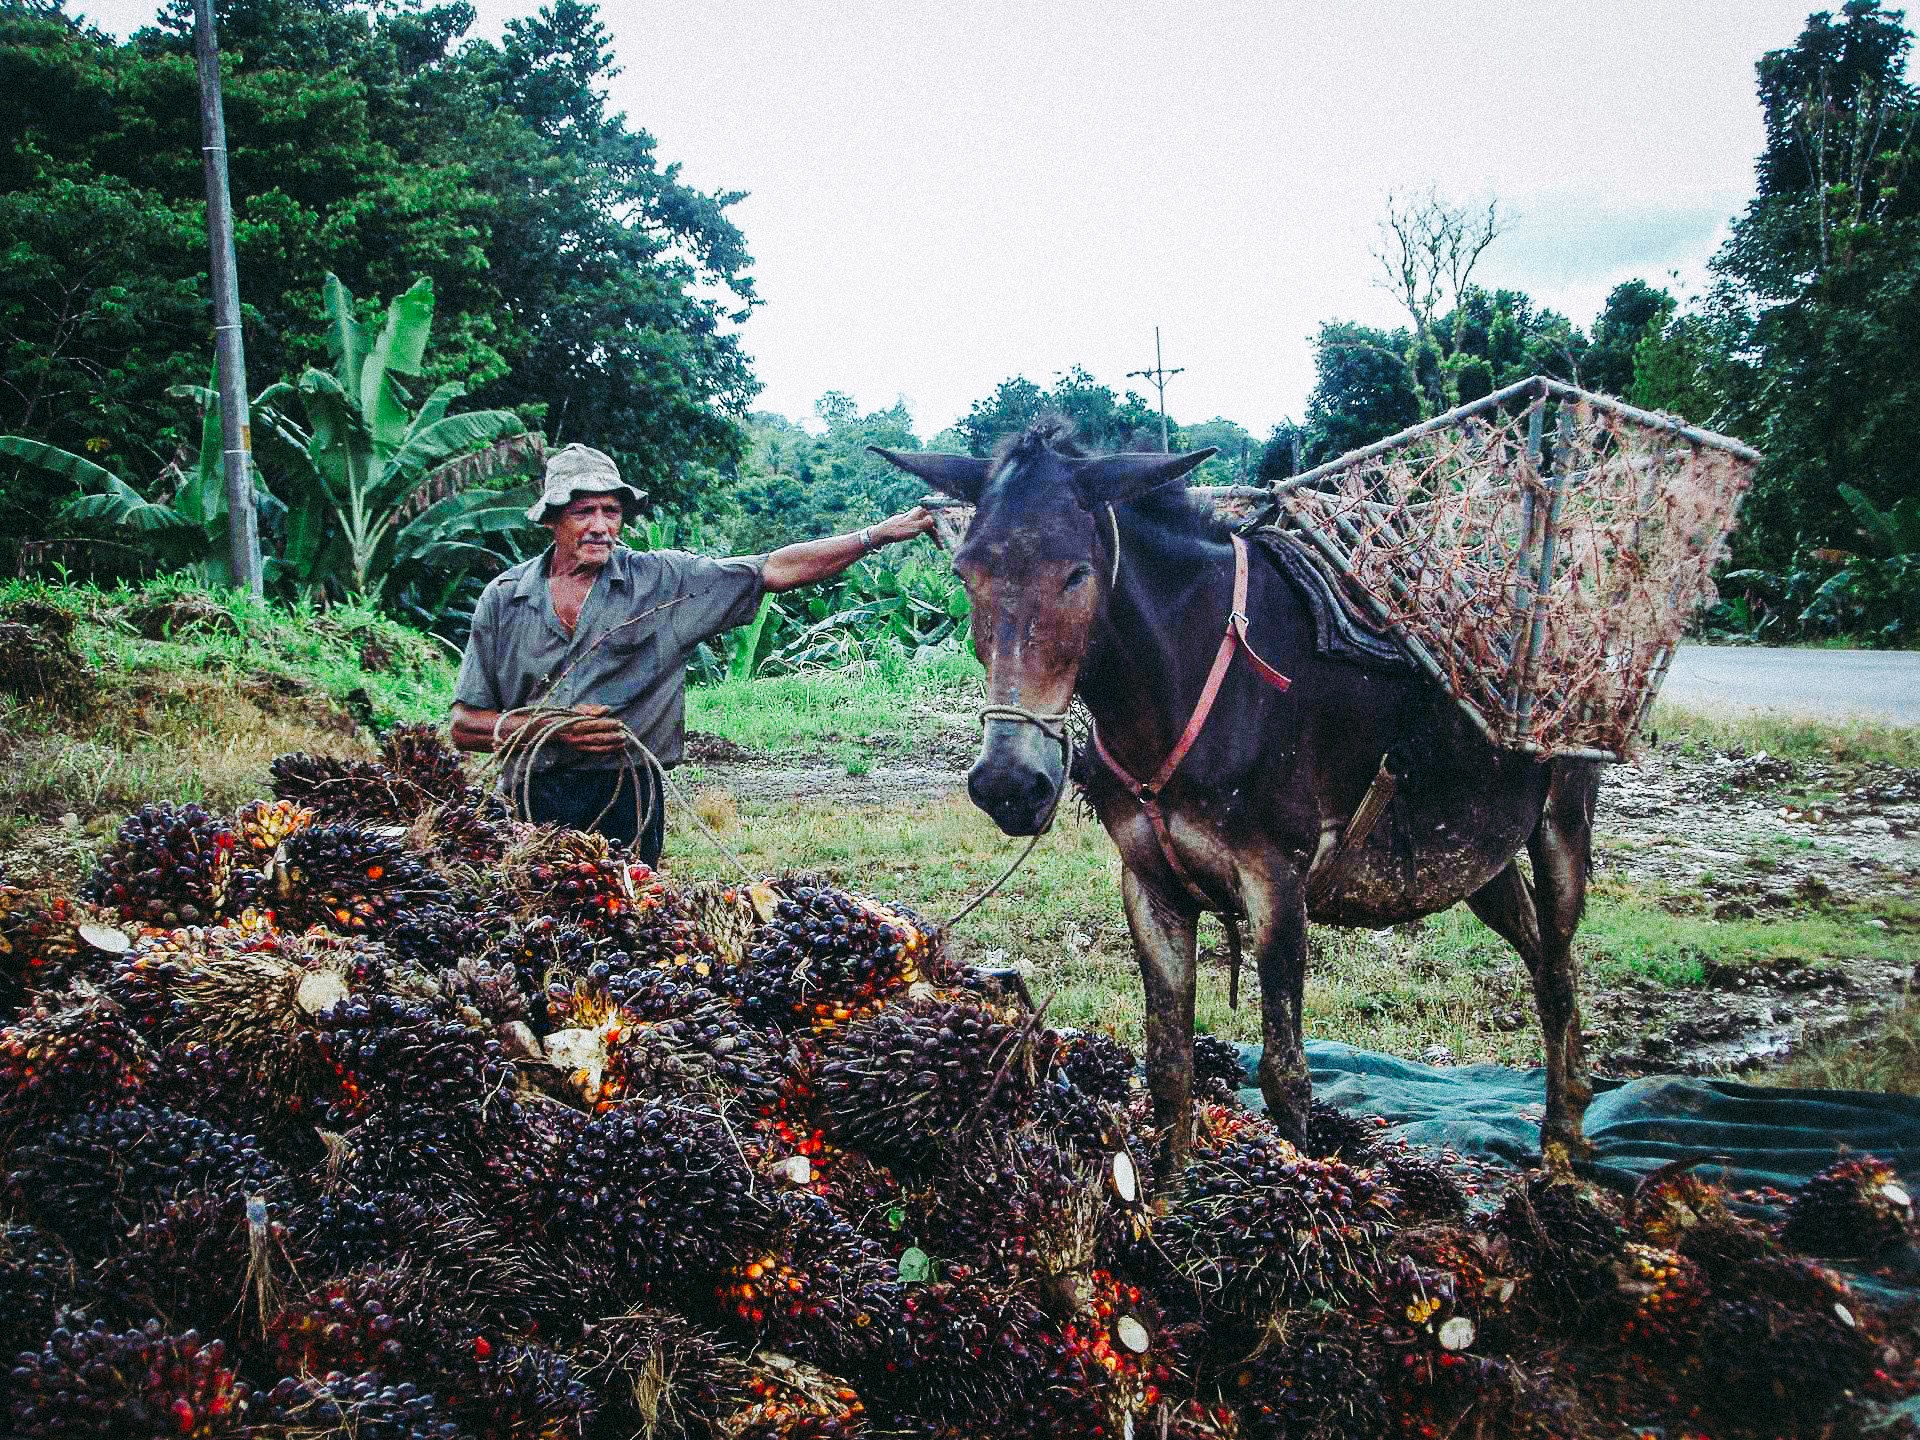 A man loads a donkey with harvested palm oil fruit in Costa Rica